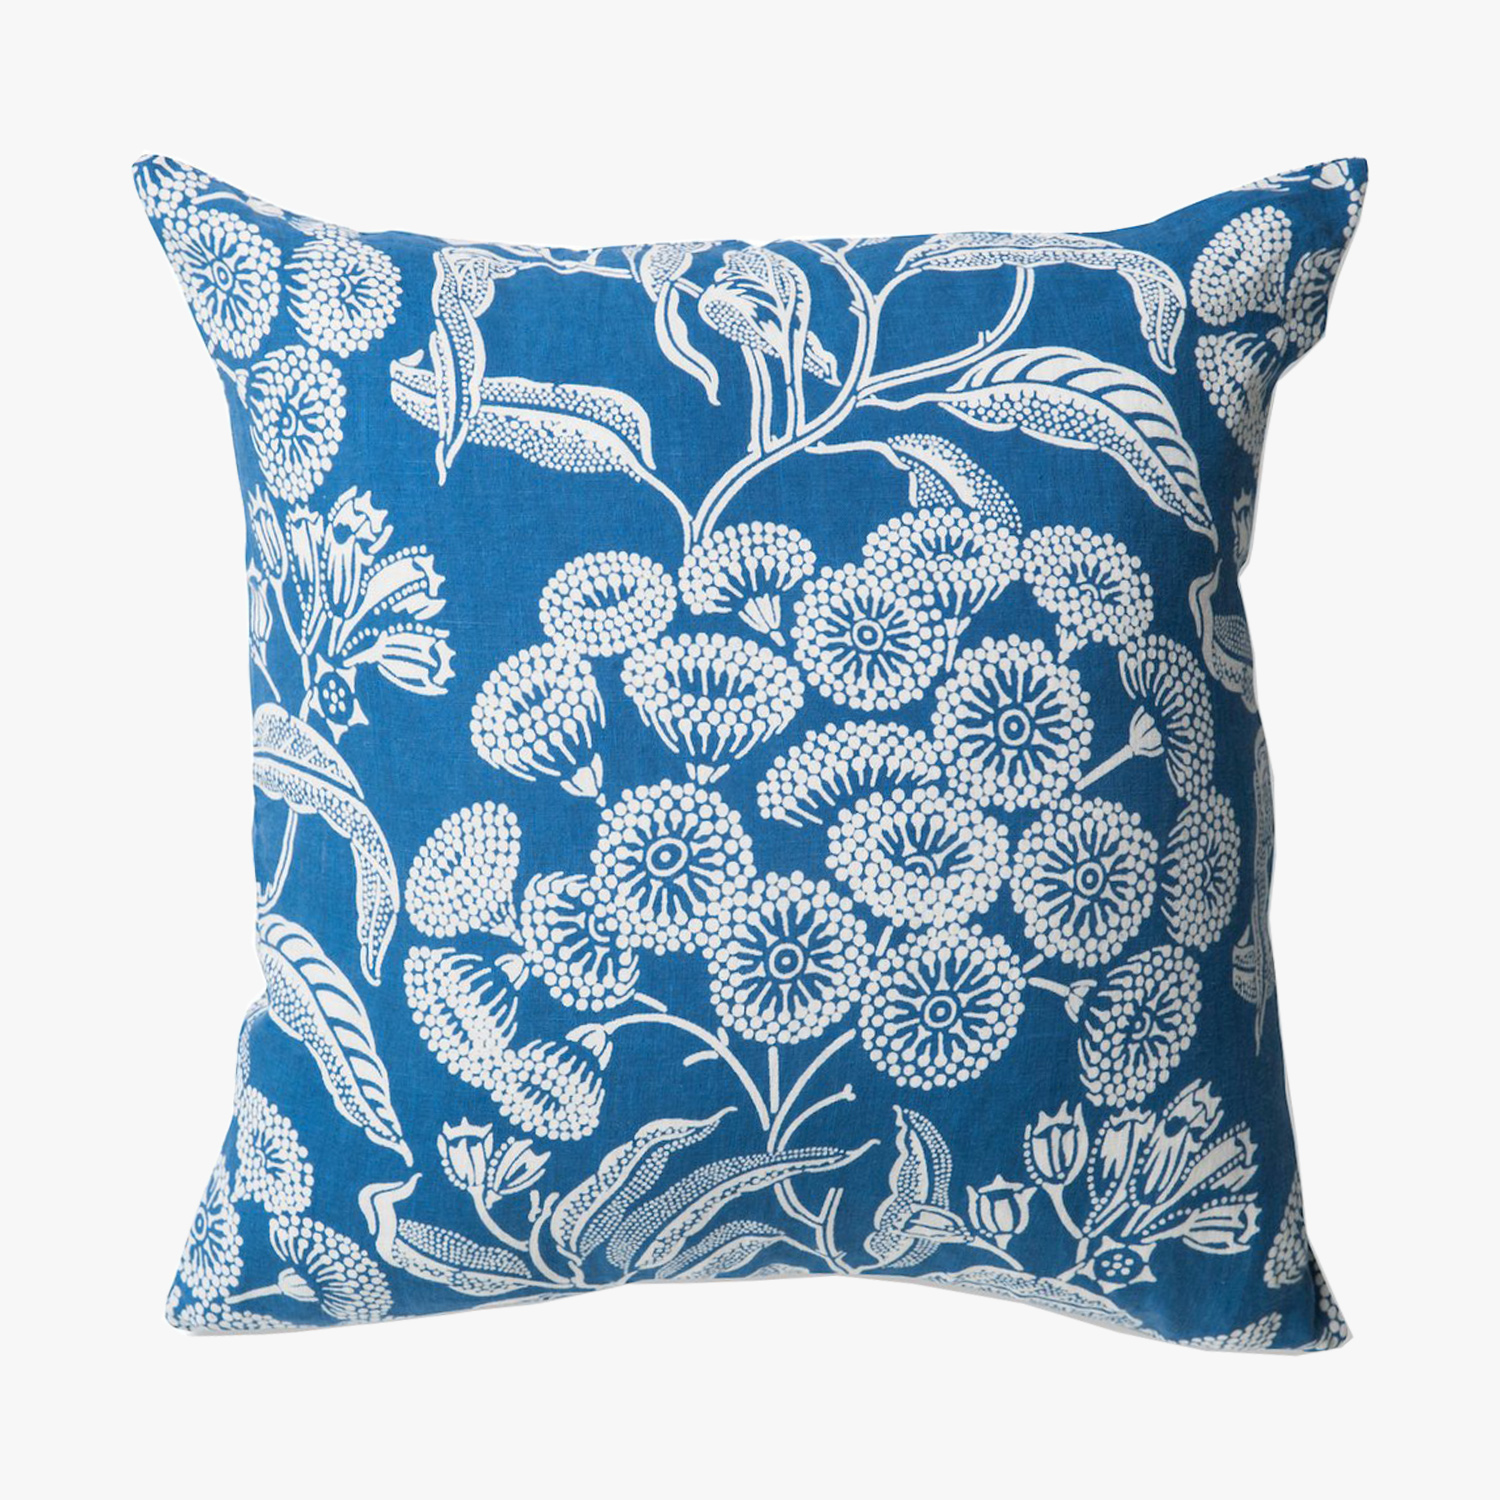 Angophora-Blue-Linen-Pillow-Cover.jpg